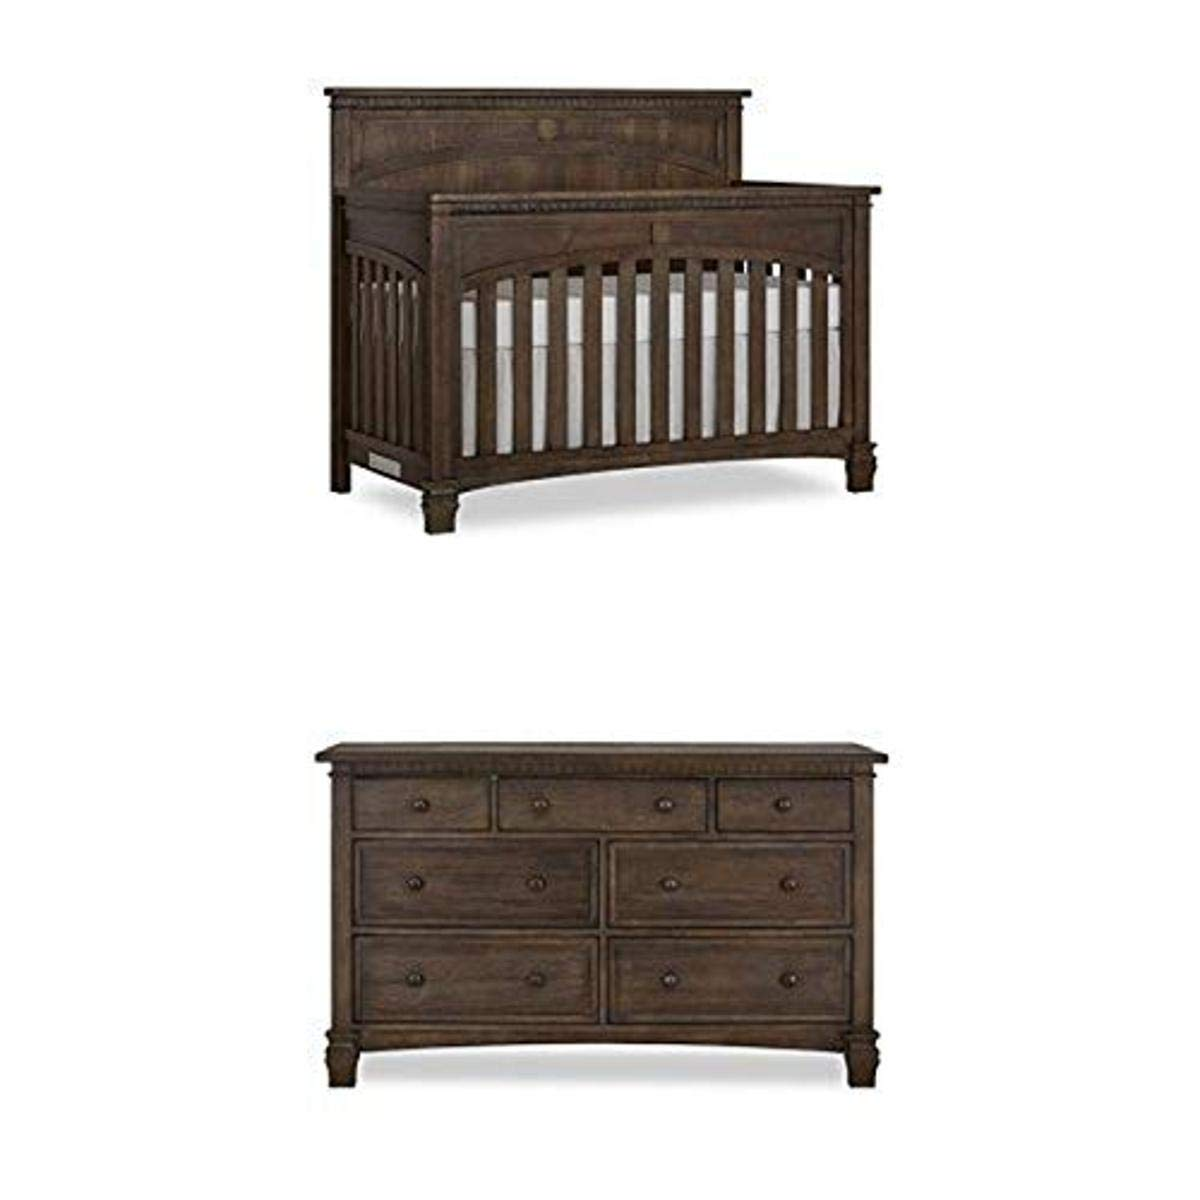 Evolur Santa Fe 5 in 1 Convertible Crib, Antique Brown with Double Dresser